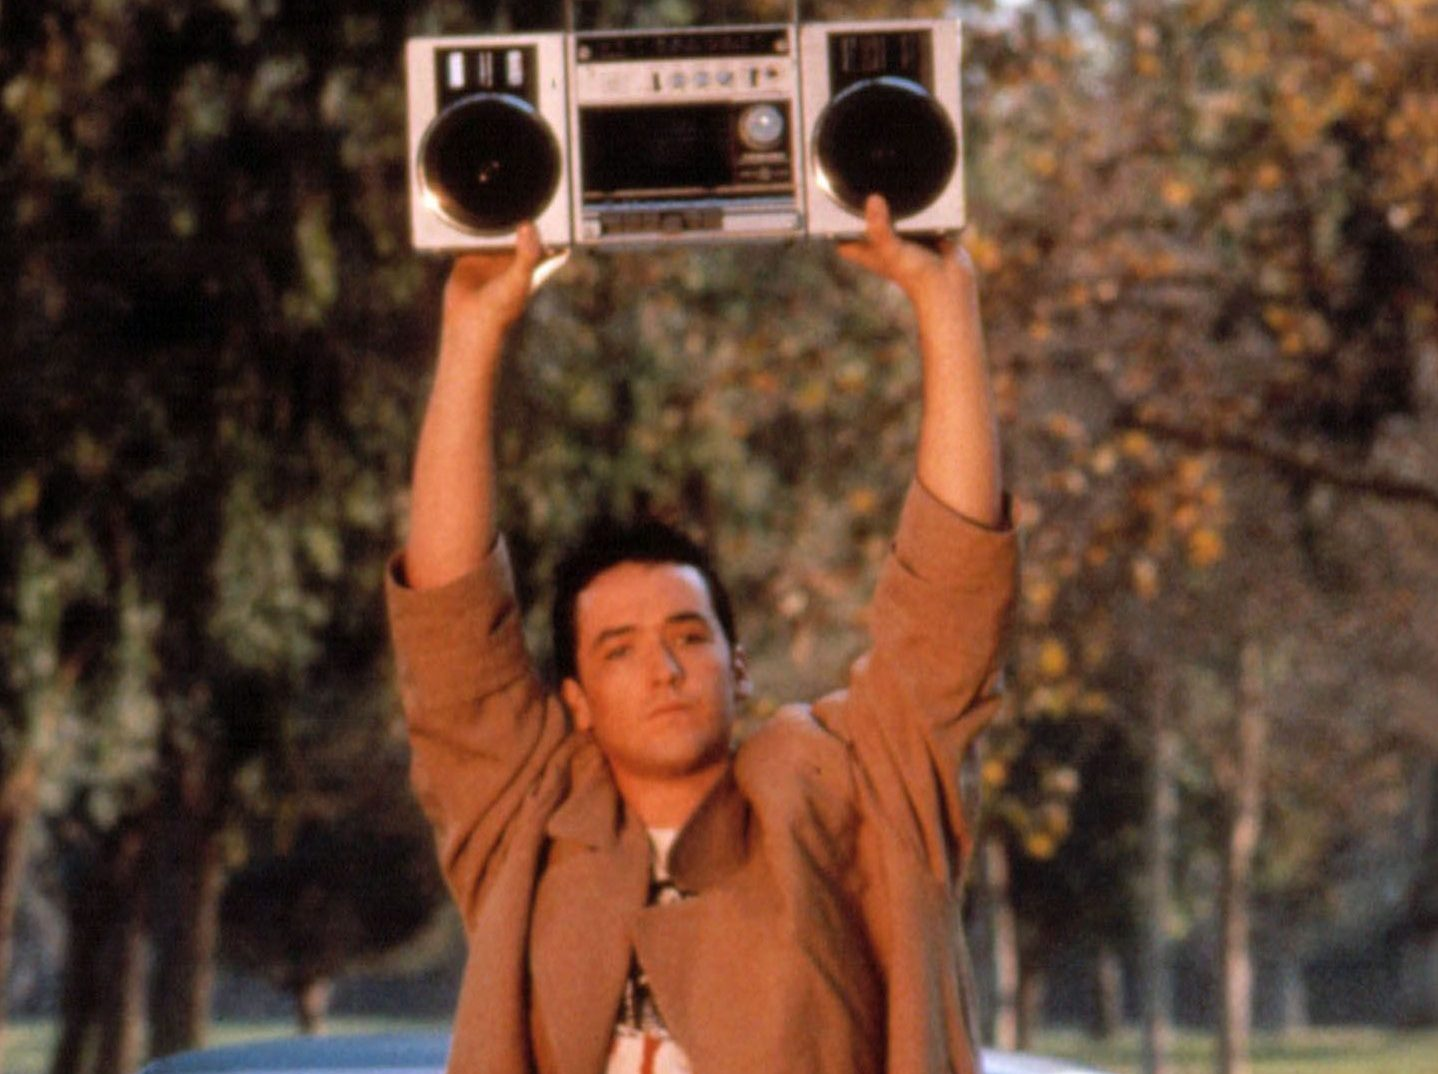 boombox 2 e1617359883304 20 Things You Never Knew About John Cusack